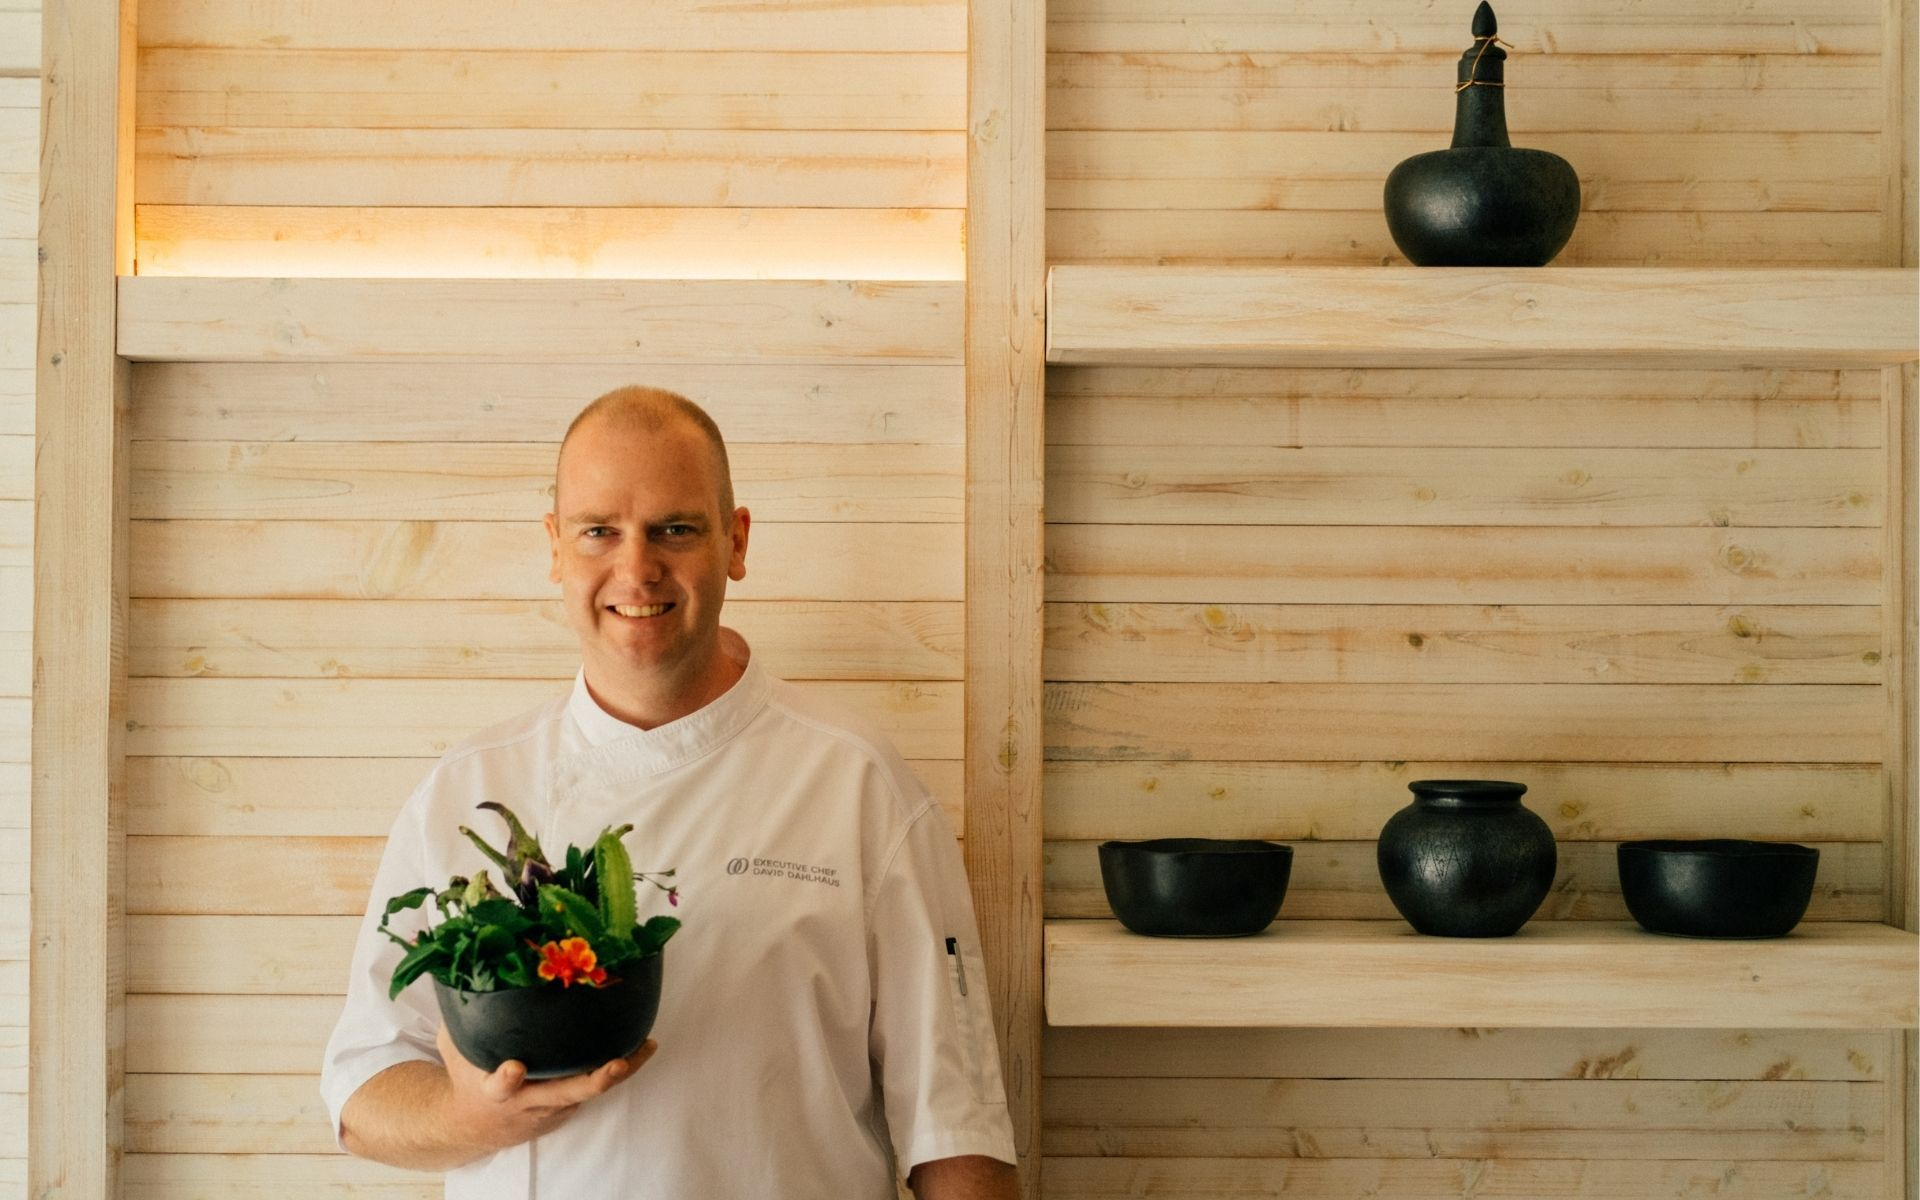 Executive chef David Dahlhaus